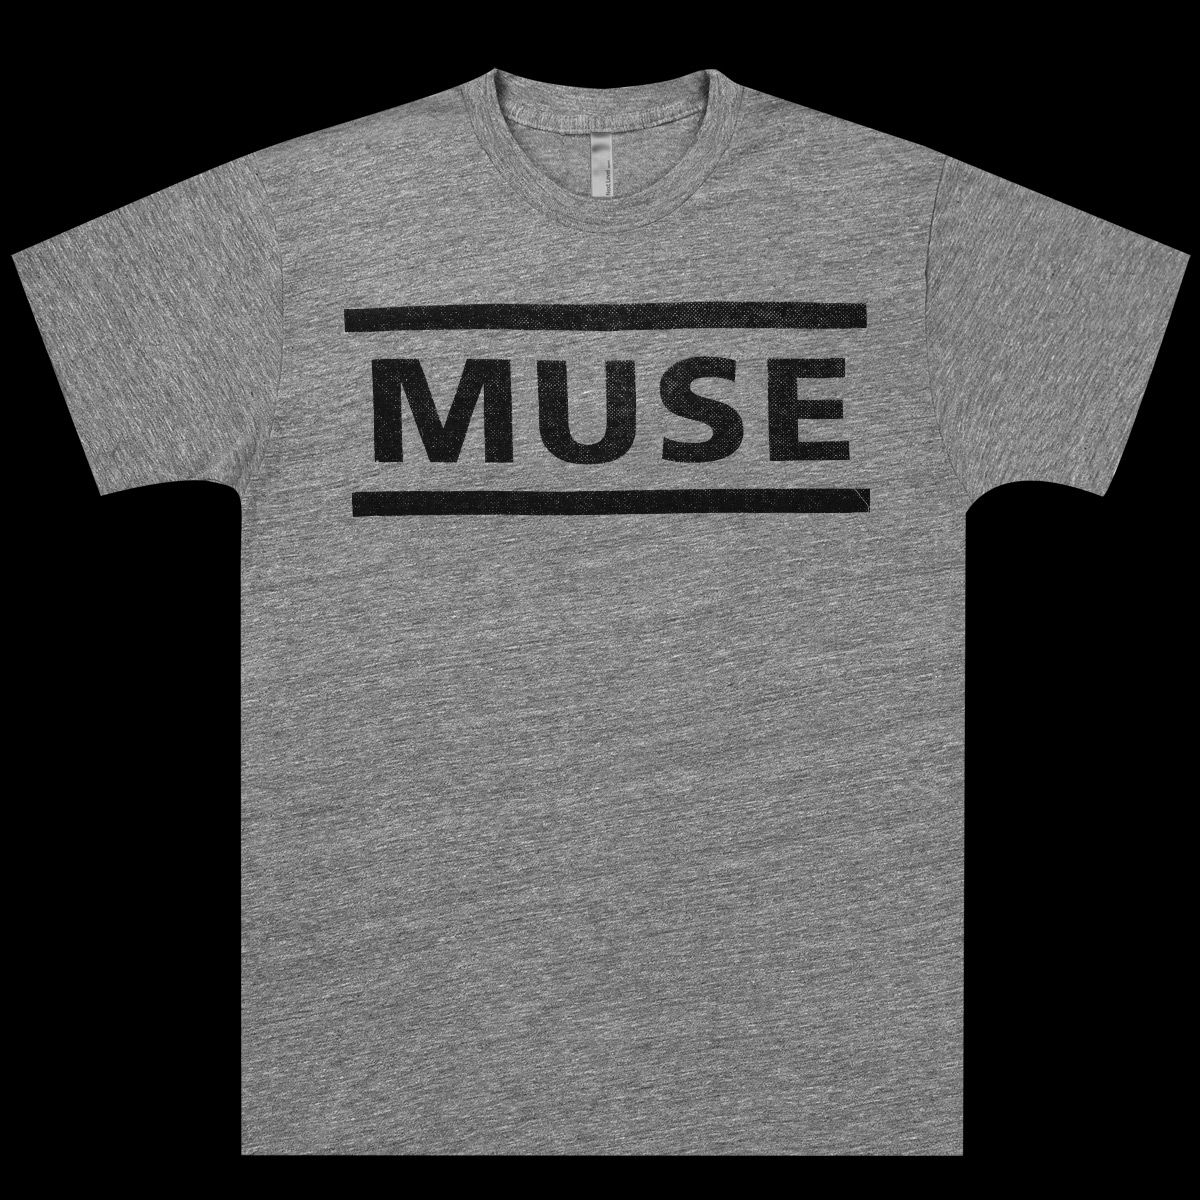 Muse Logo Type T-Shirt $25.00